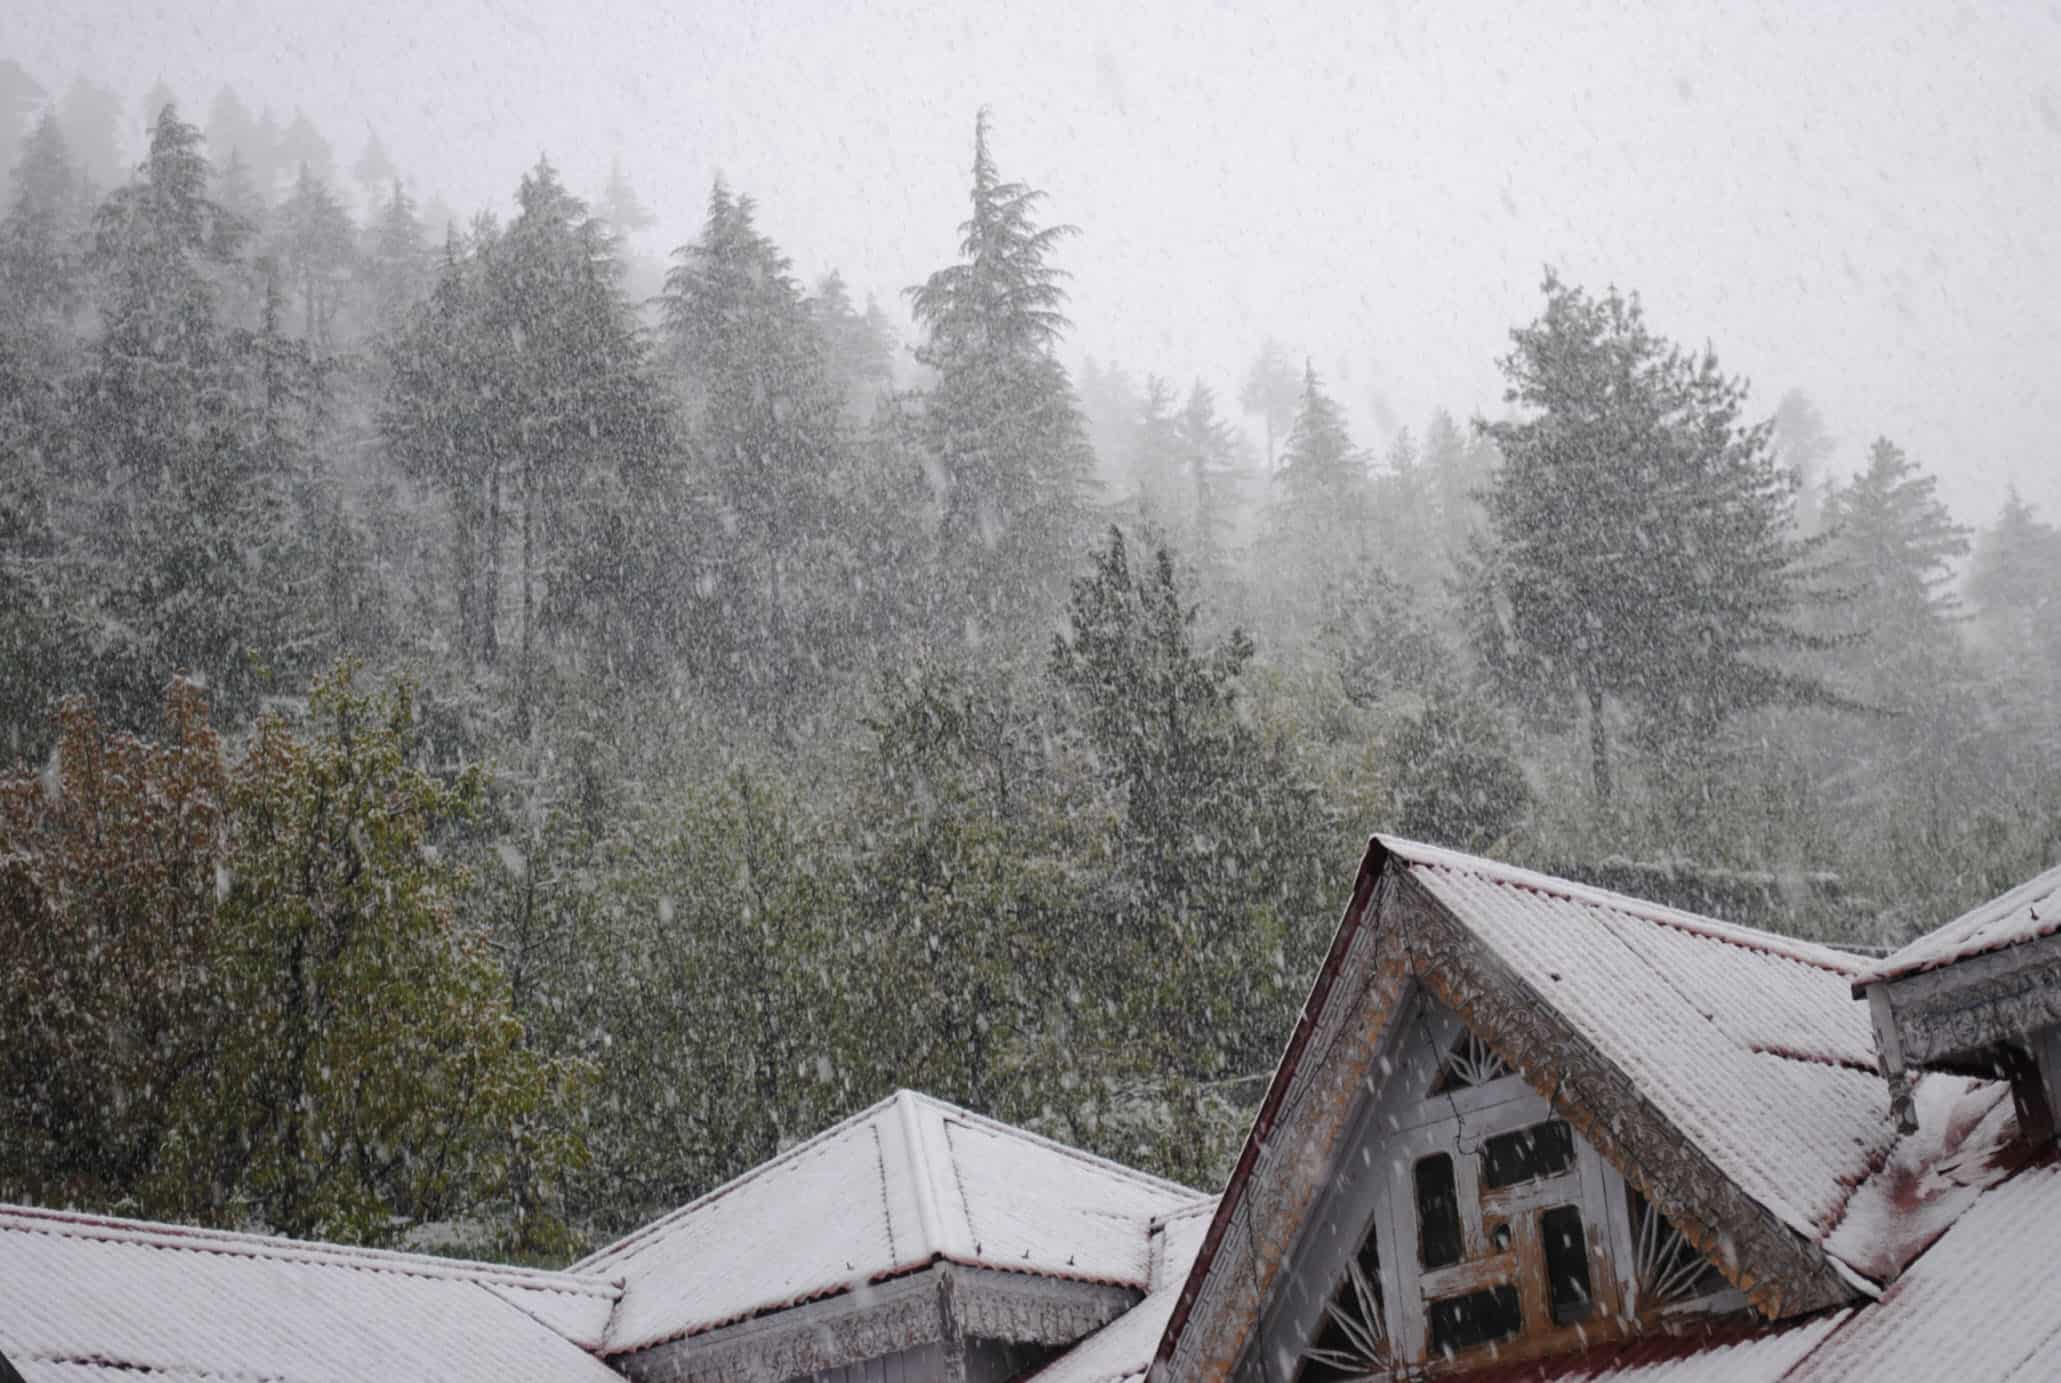 Rohtang Pass closed due to snow for 2014 - 2015